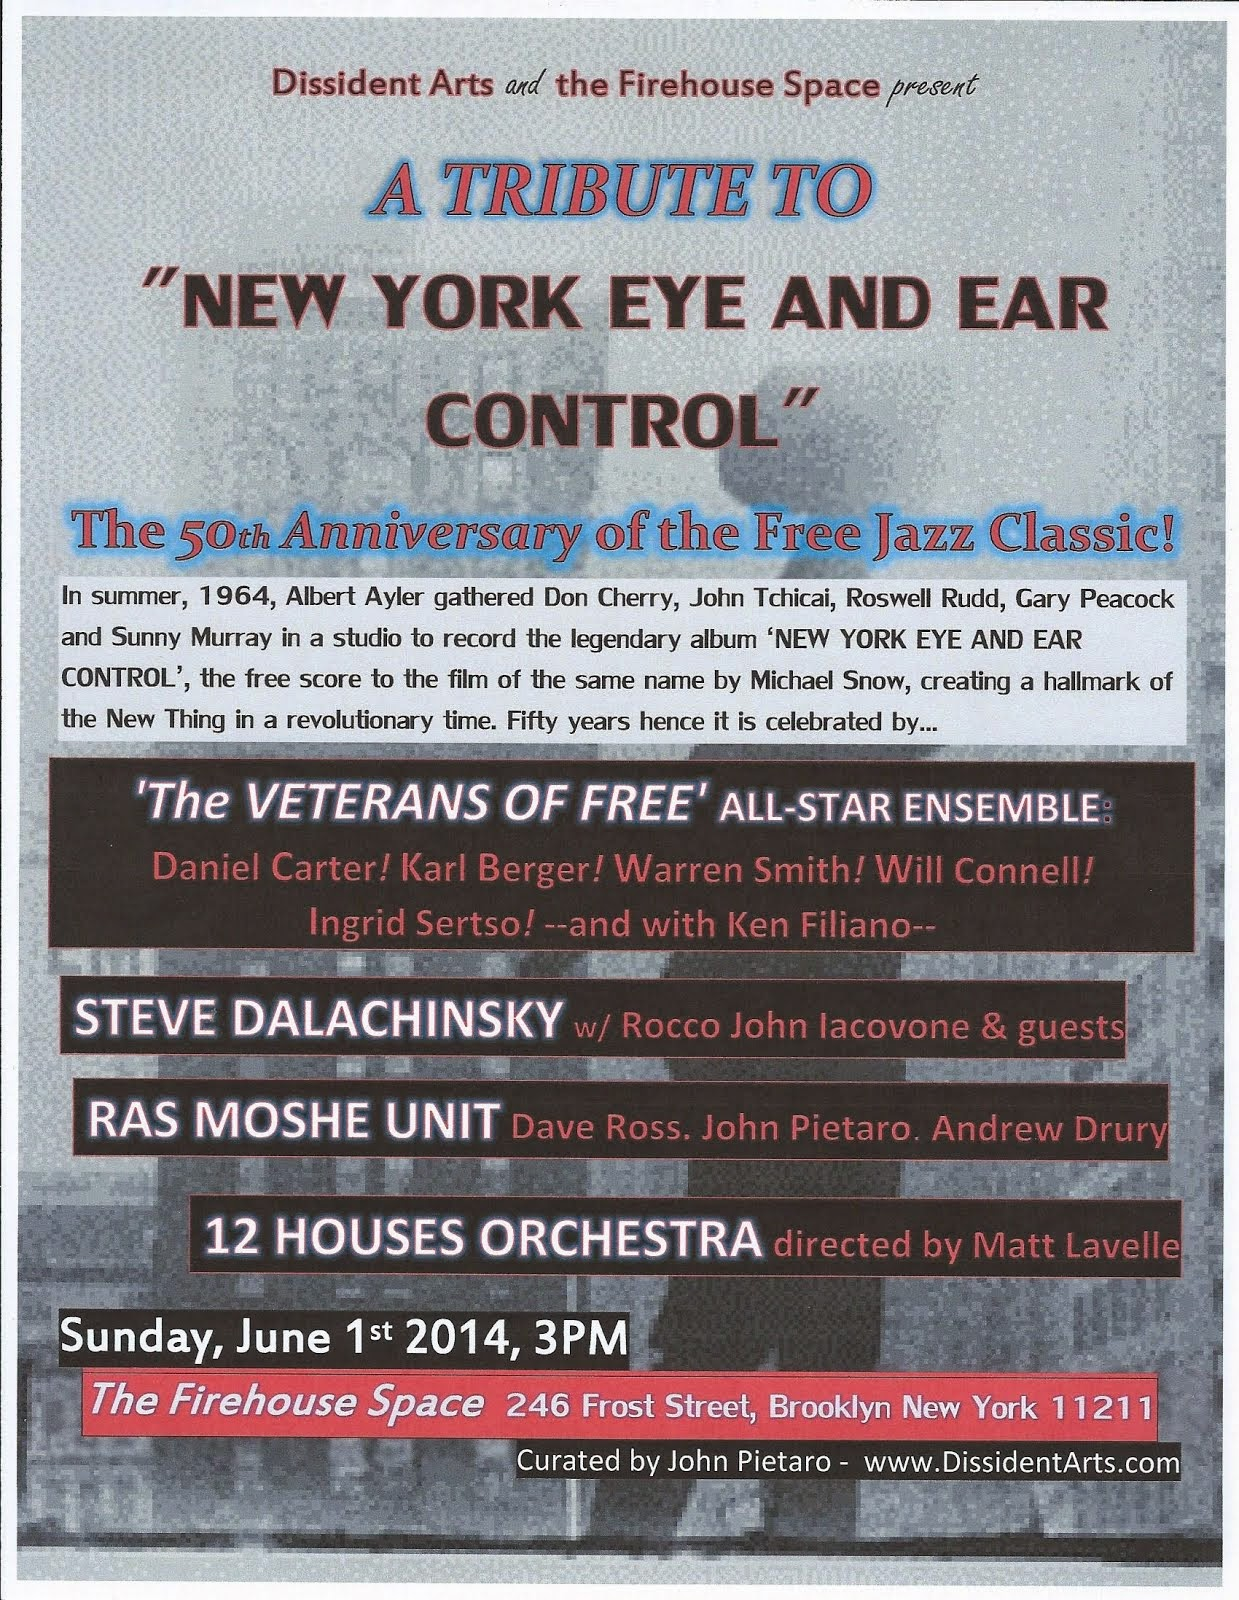 Tribute to 'New York Eye and Ear Control'